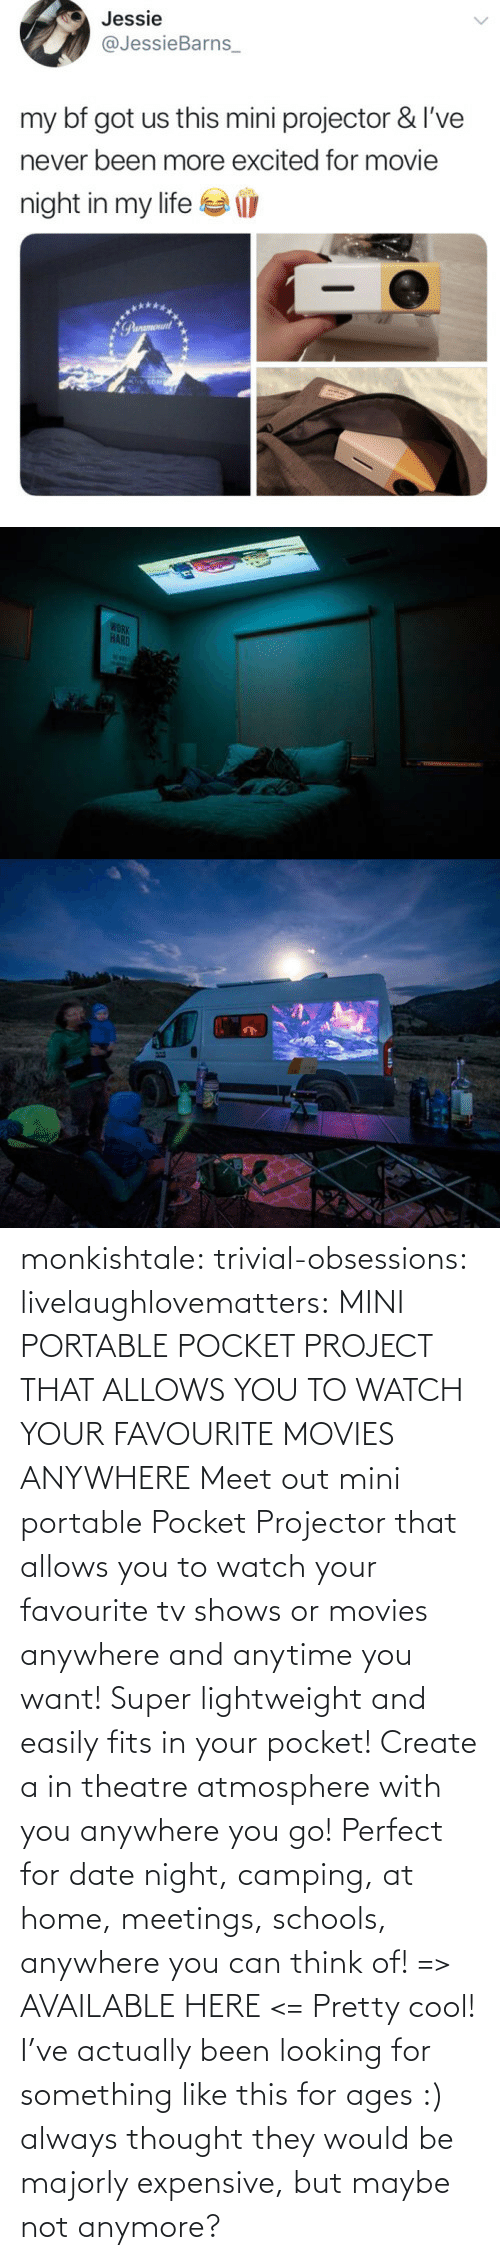 Lightweight: monkishtale: trivial-obsessions:   livelaughlovematters:   MINI PORTABLE POCKET PROJECT THAT ALLOWS YOU TO WATCH YOUR FAVOURITE MOVIES ANYWHERE Meet out mini portable Pocket Projector that allows you to watch your favourite tv shows or movies anywhere and anytime you want! Super lightweight and easily fits in your pocket! Create a in theatre atmosphere with you anywhere you go! Perfect for date night, camping, at home, meetings, schools, anywhere you can think of! => AVAILABLE HERE <=    Pretty cool!    I've actually been looking for something like this for ages :) always thought they would be majorly expensive, but maybe not anymore?